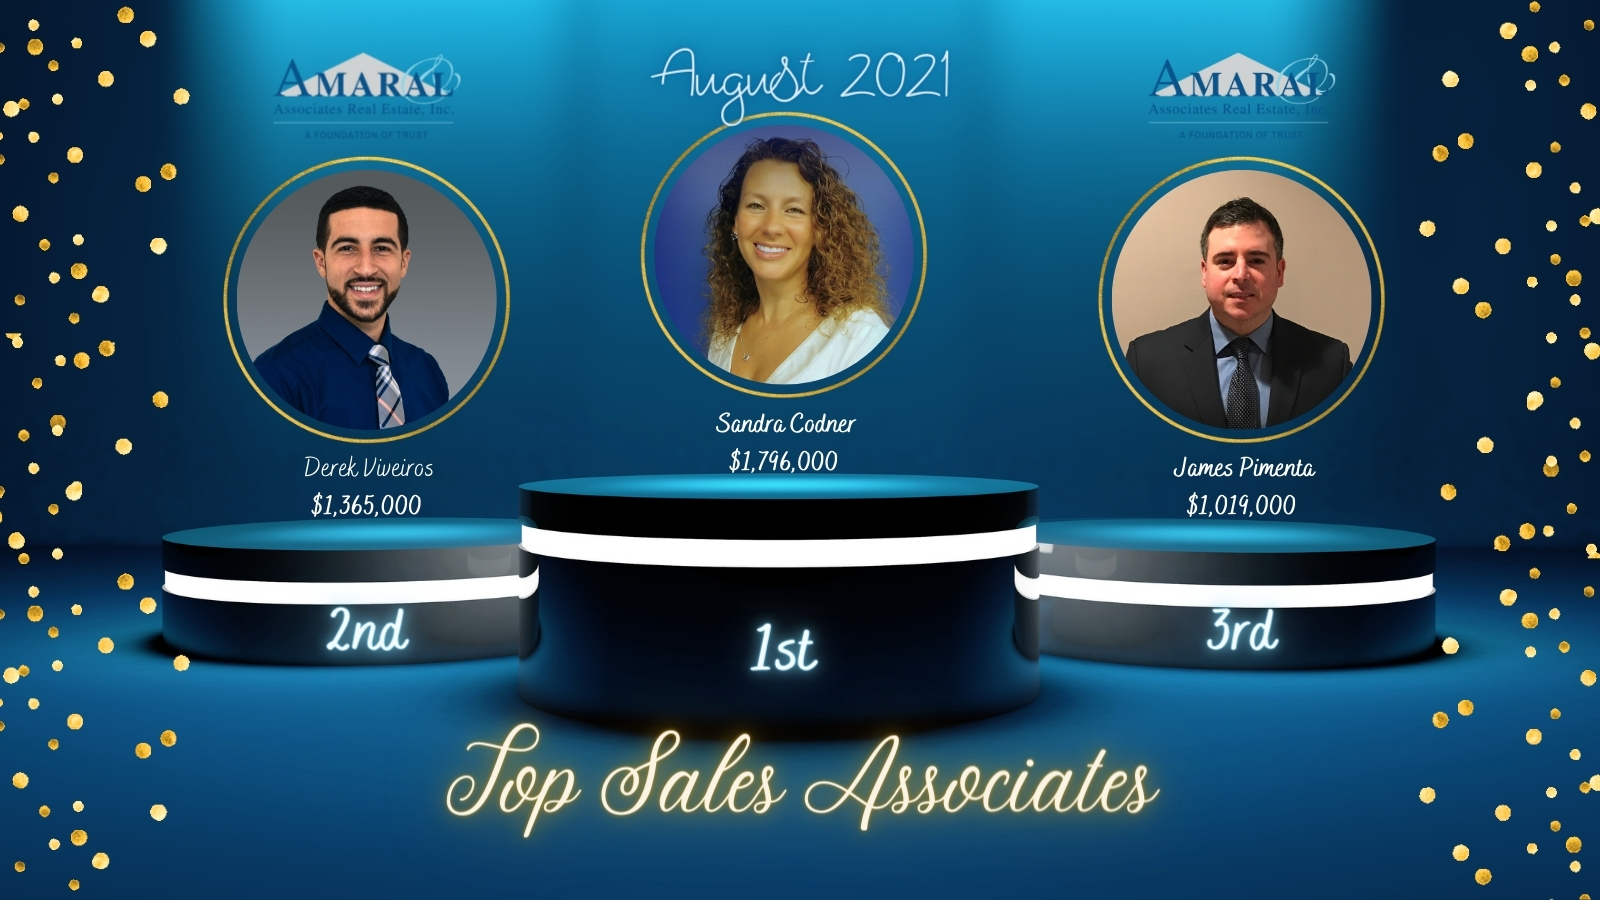 Congratulations to our Top 3 Sales Associates for the month of August!